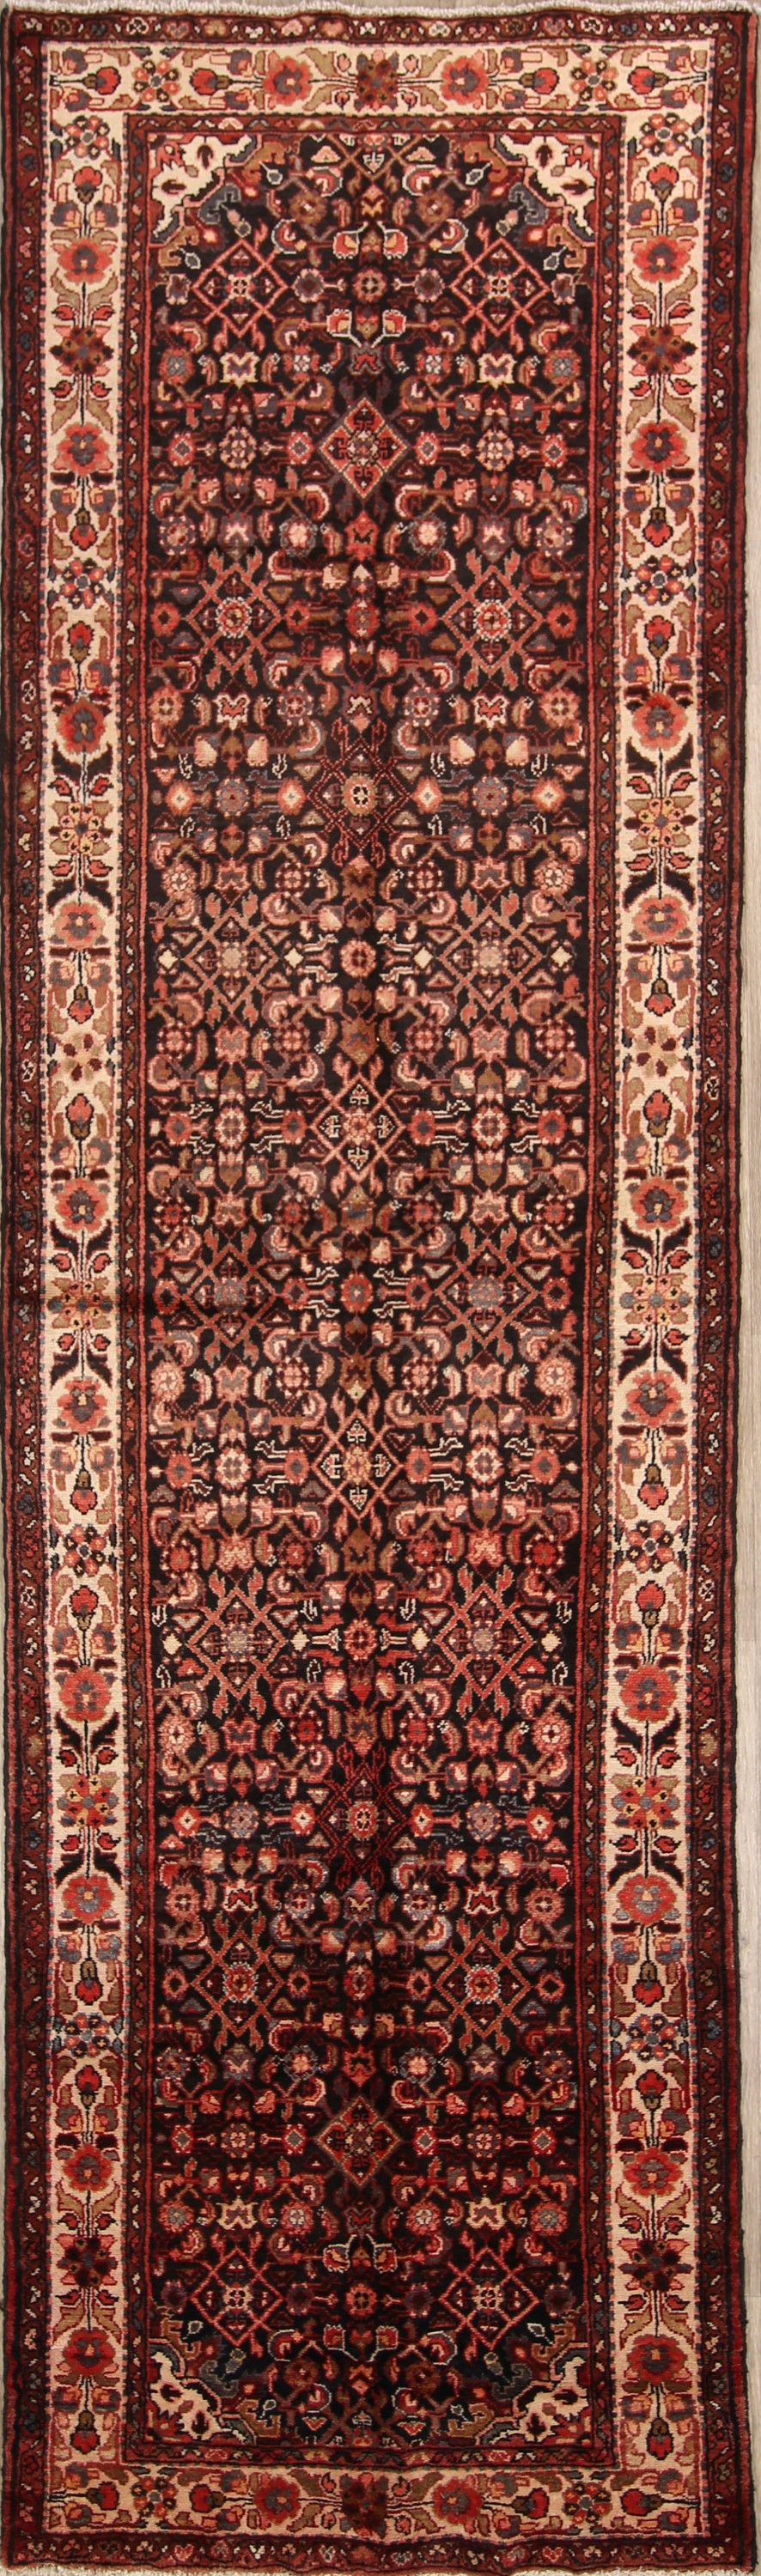 All-Over Floral 4x13 Hamedan Persian Rug Runner